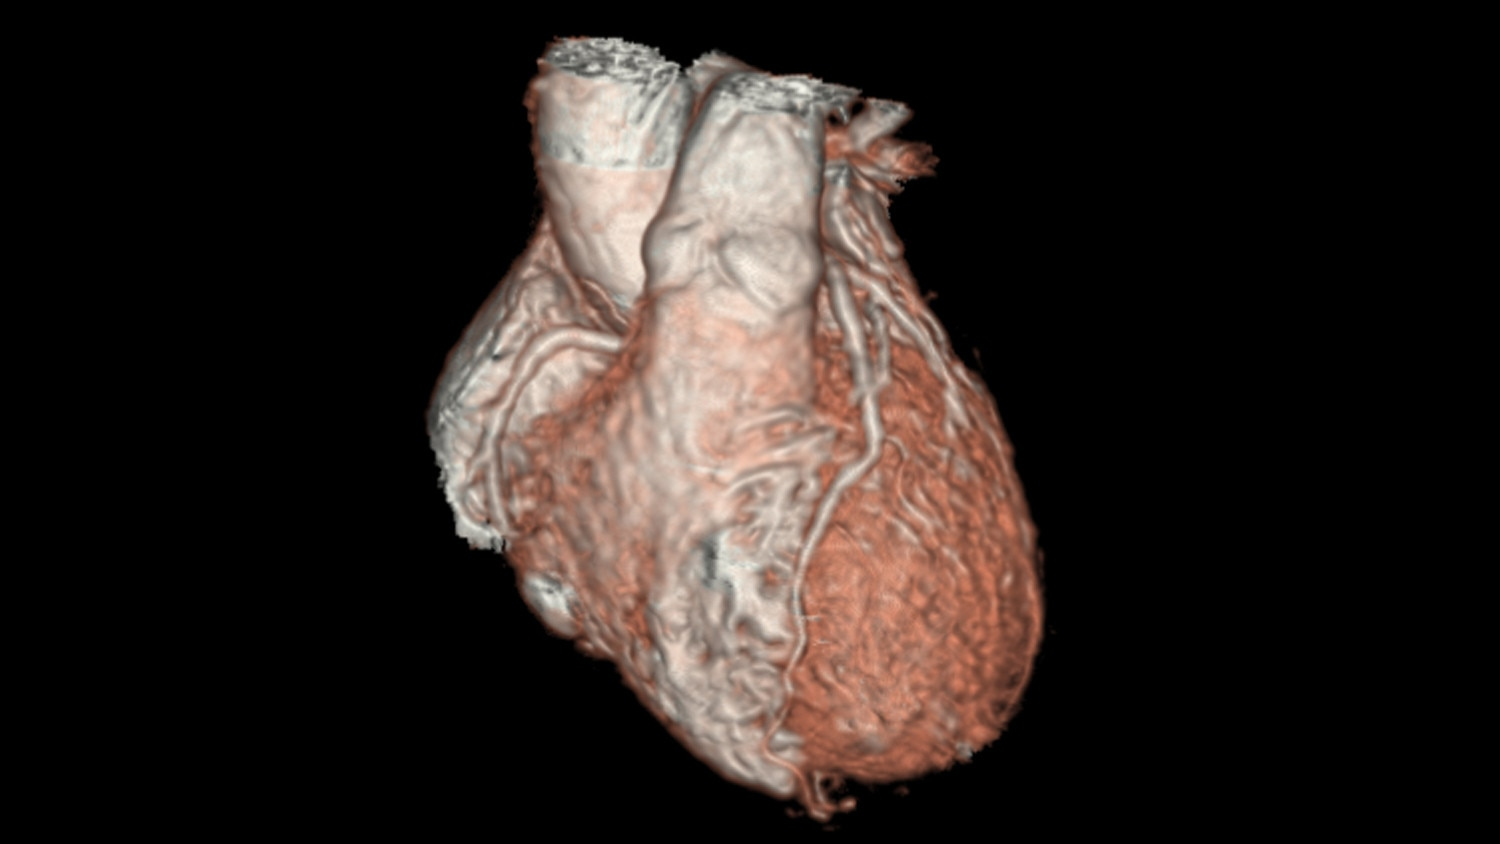 3D heart pediatric imaging clinical